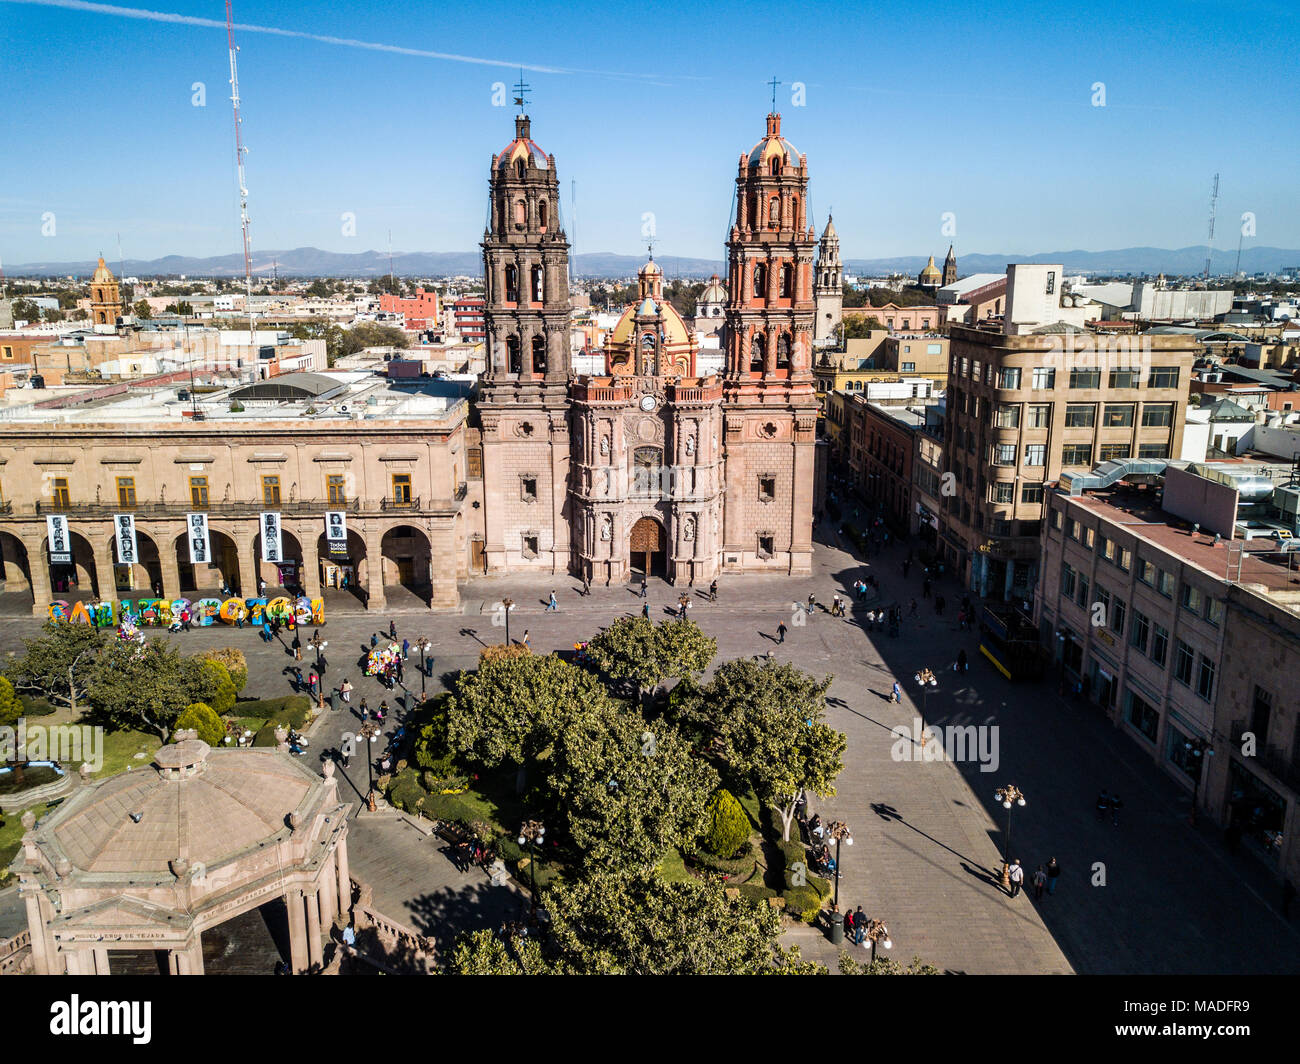 Metropolitan Cathedral of San Luis Potosí, Plaza de las Armas, San Luis Potosi, Mexico Stock Photo - Alamy